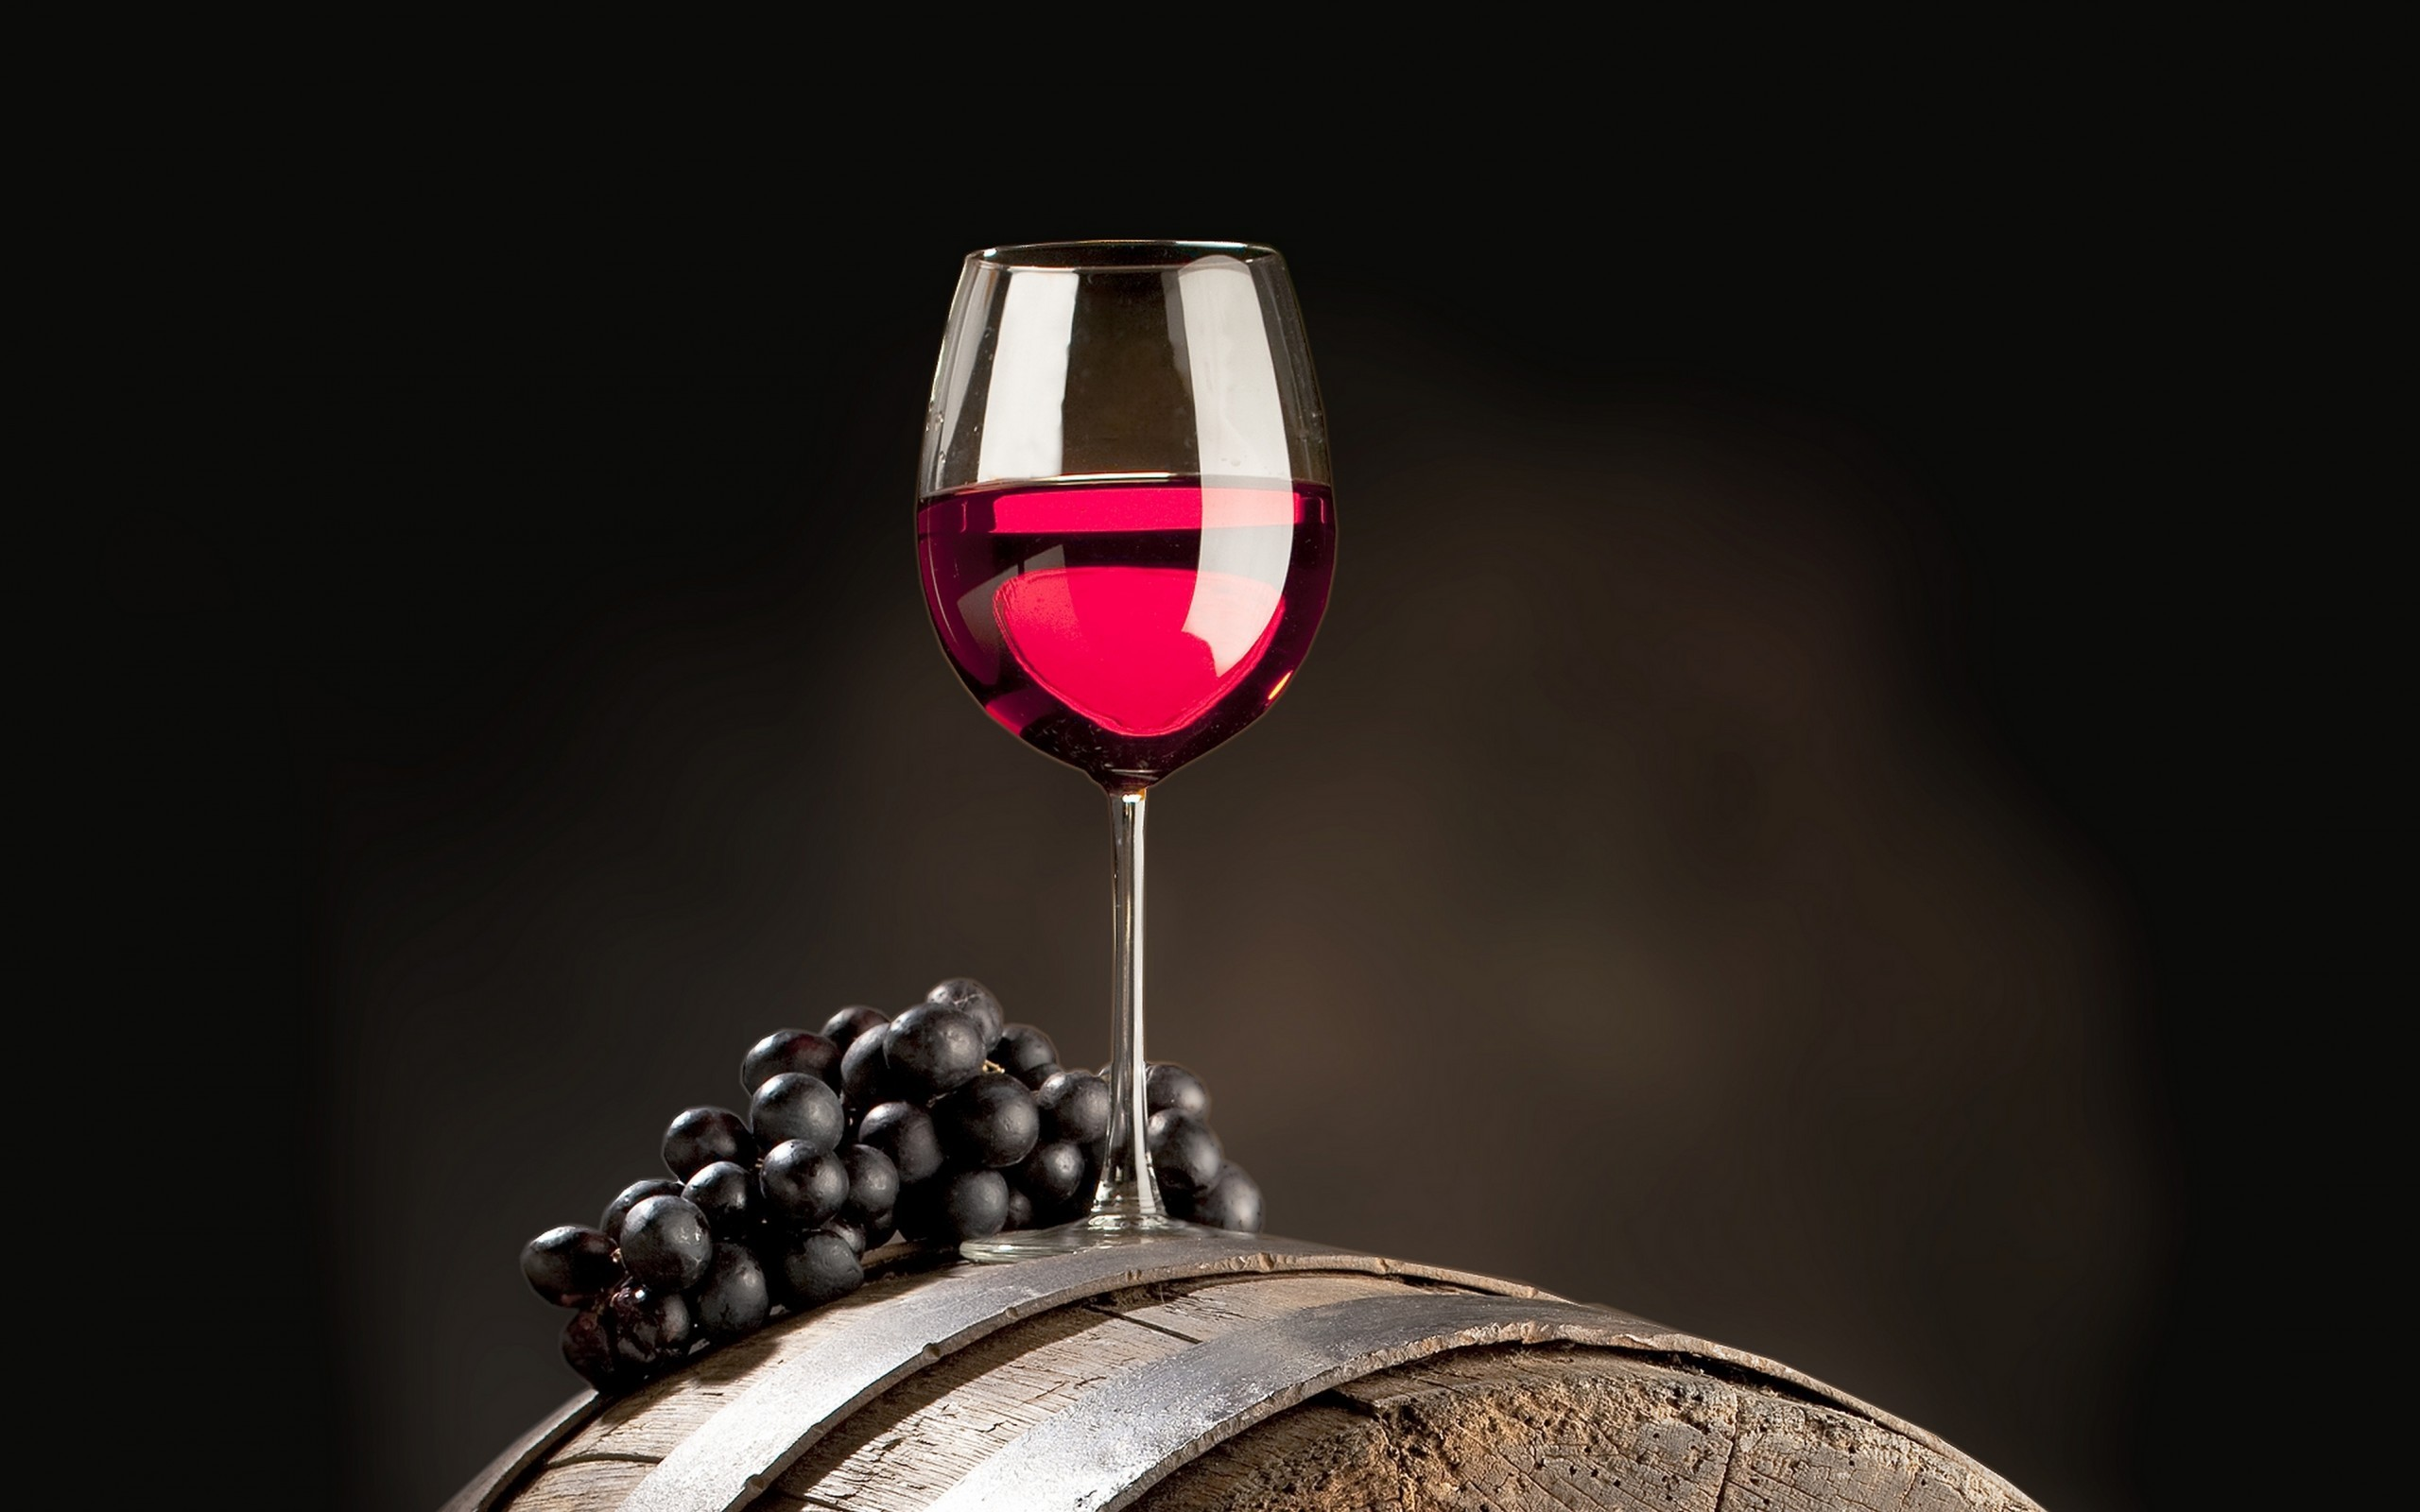 red-wine-glass-wallpapers_41959_2560x1600.jpg